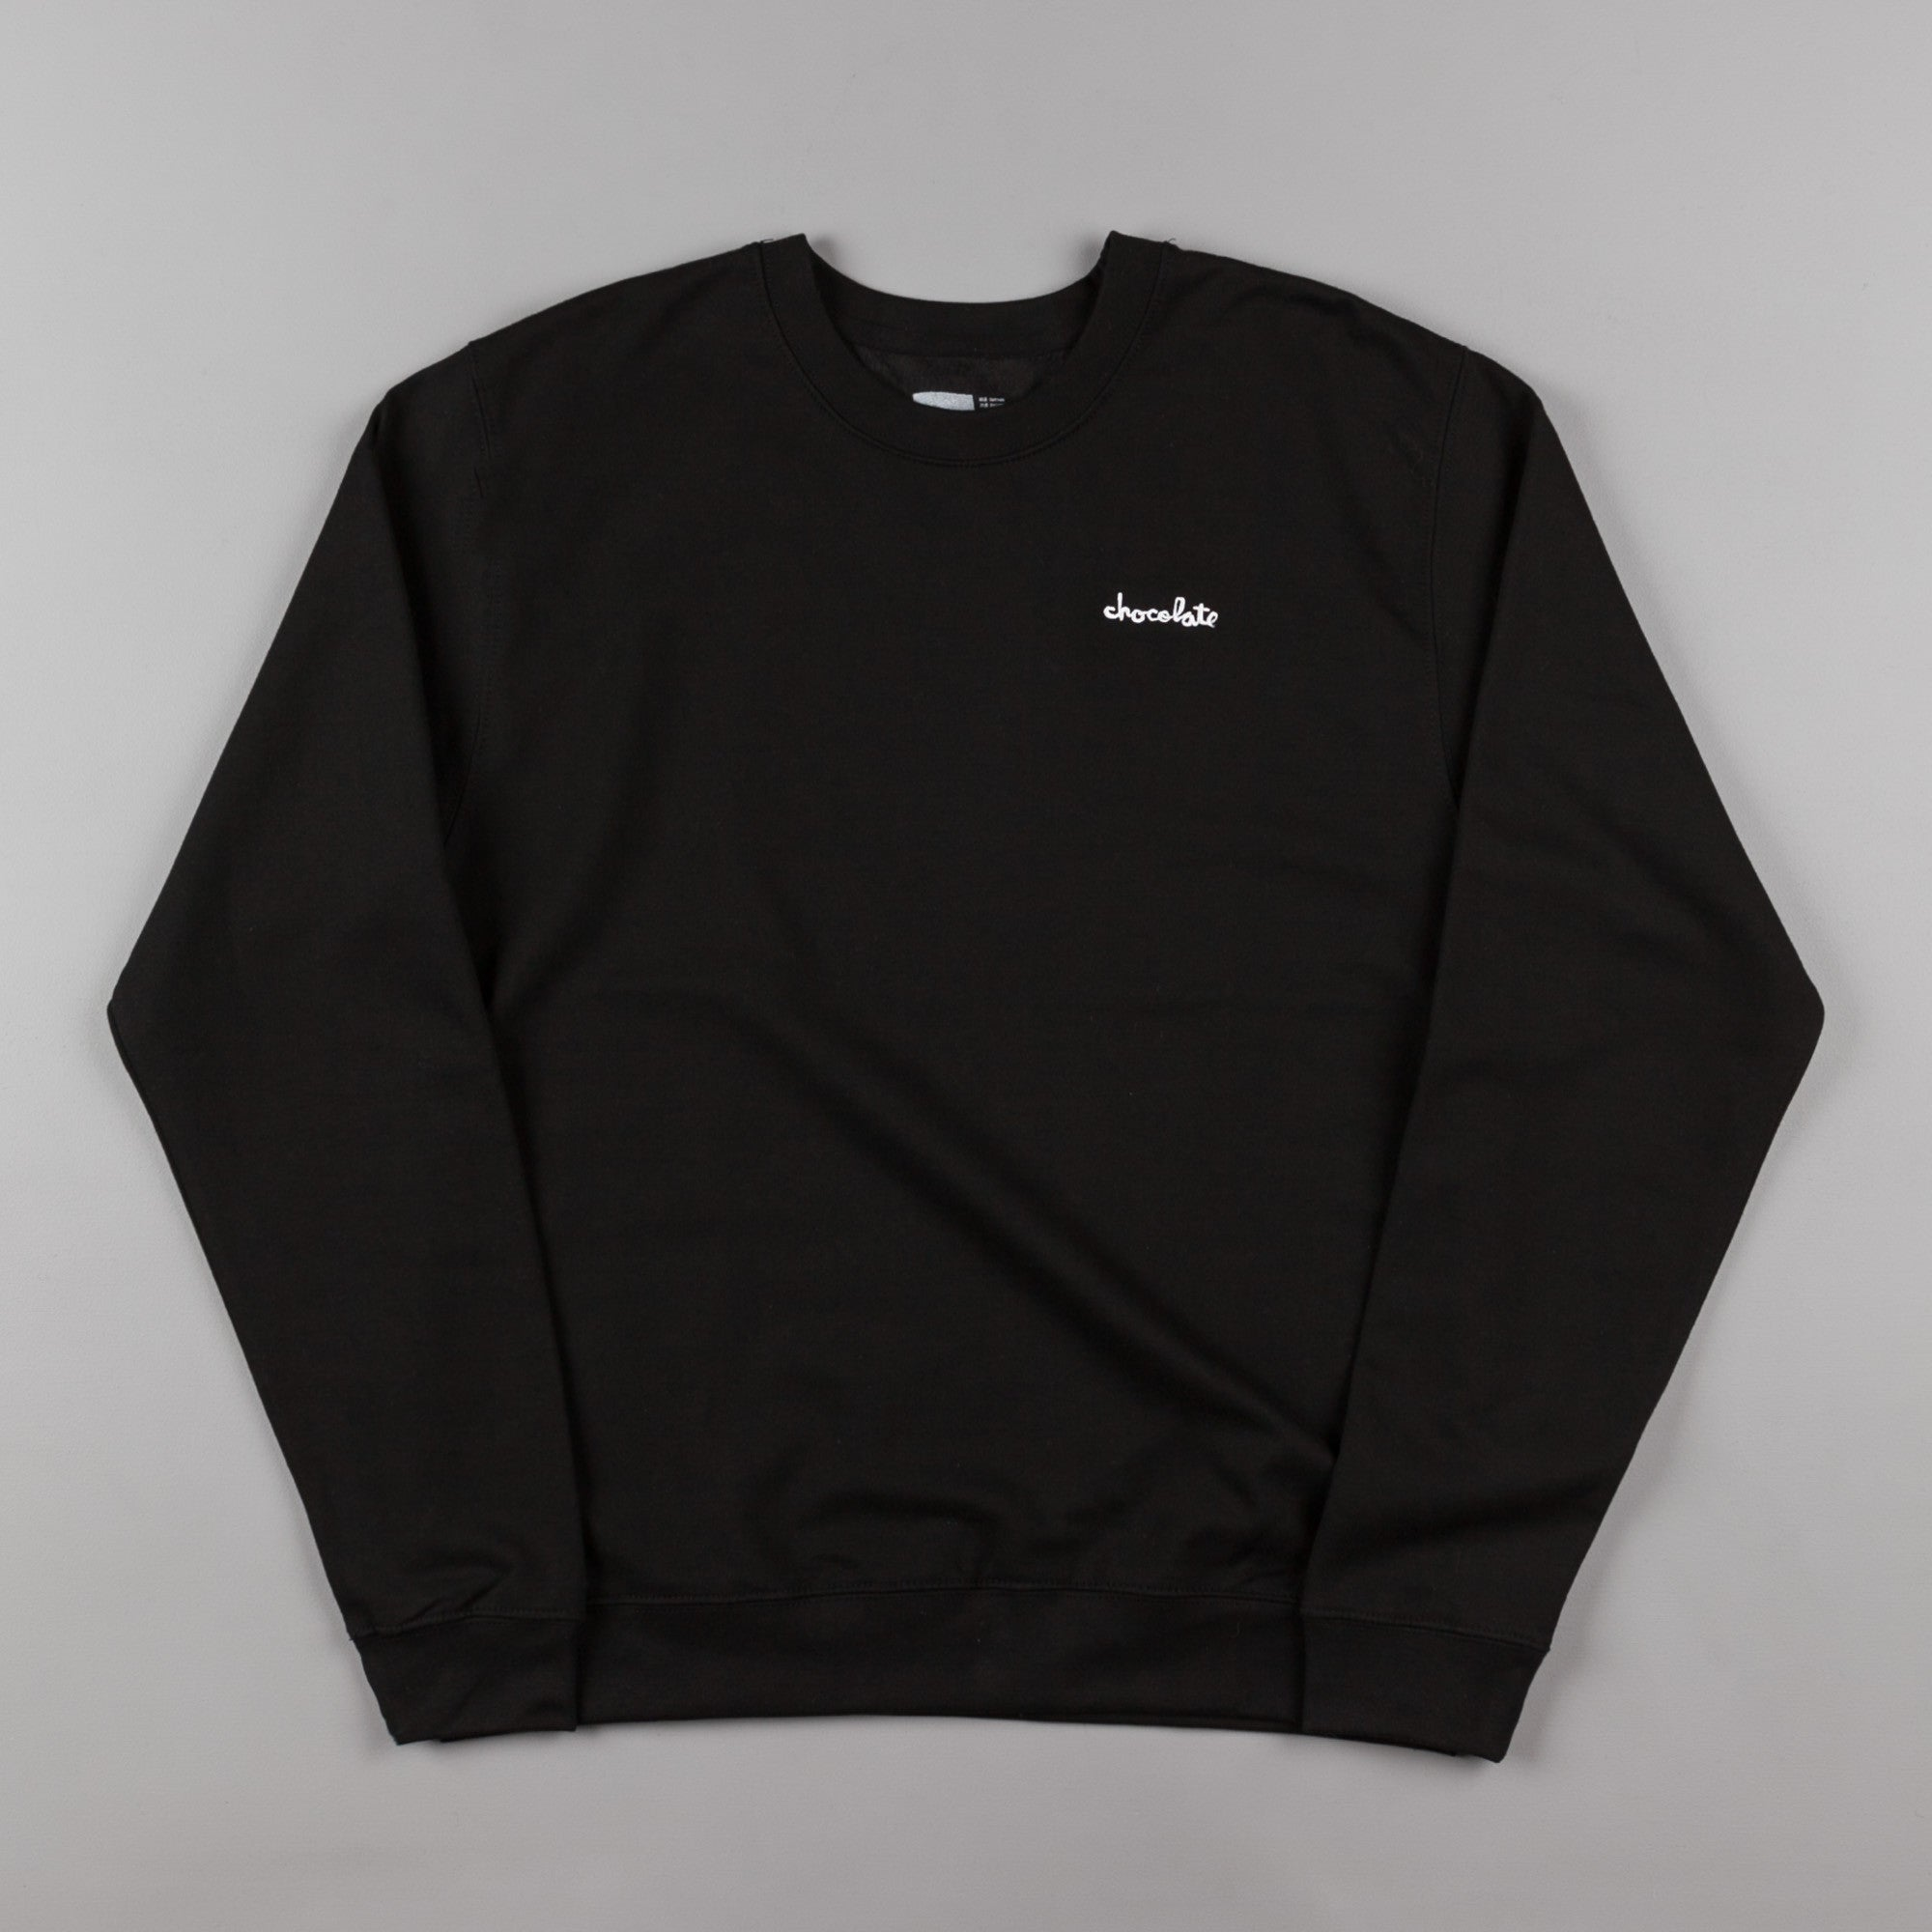 Chocolate Chunk Embroidered Crewneck Sweatshirt - Black